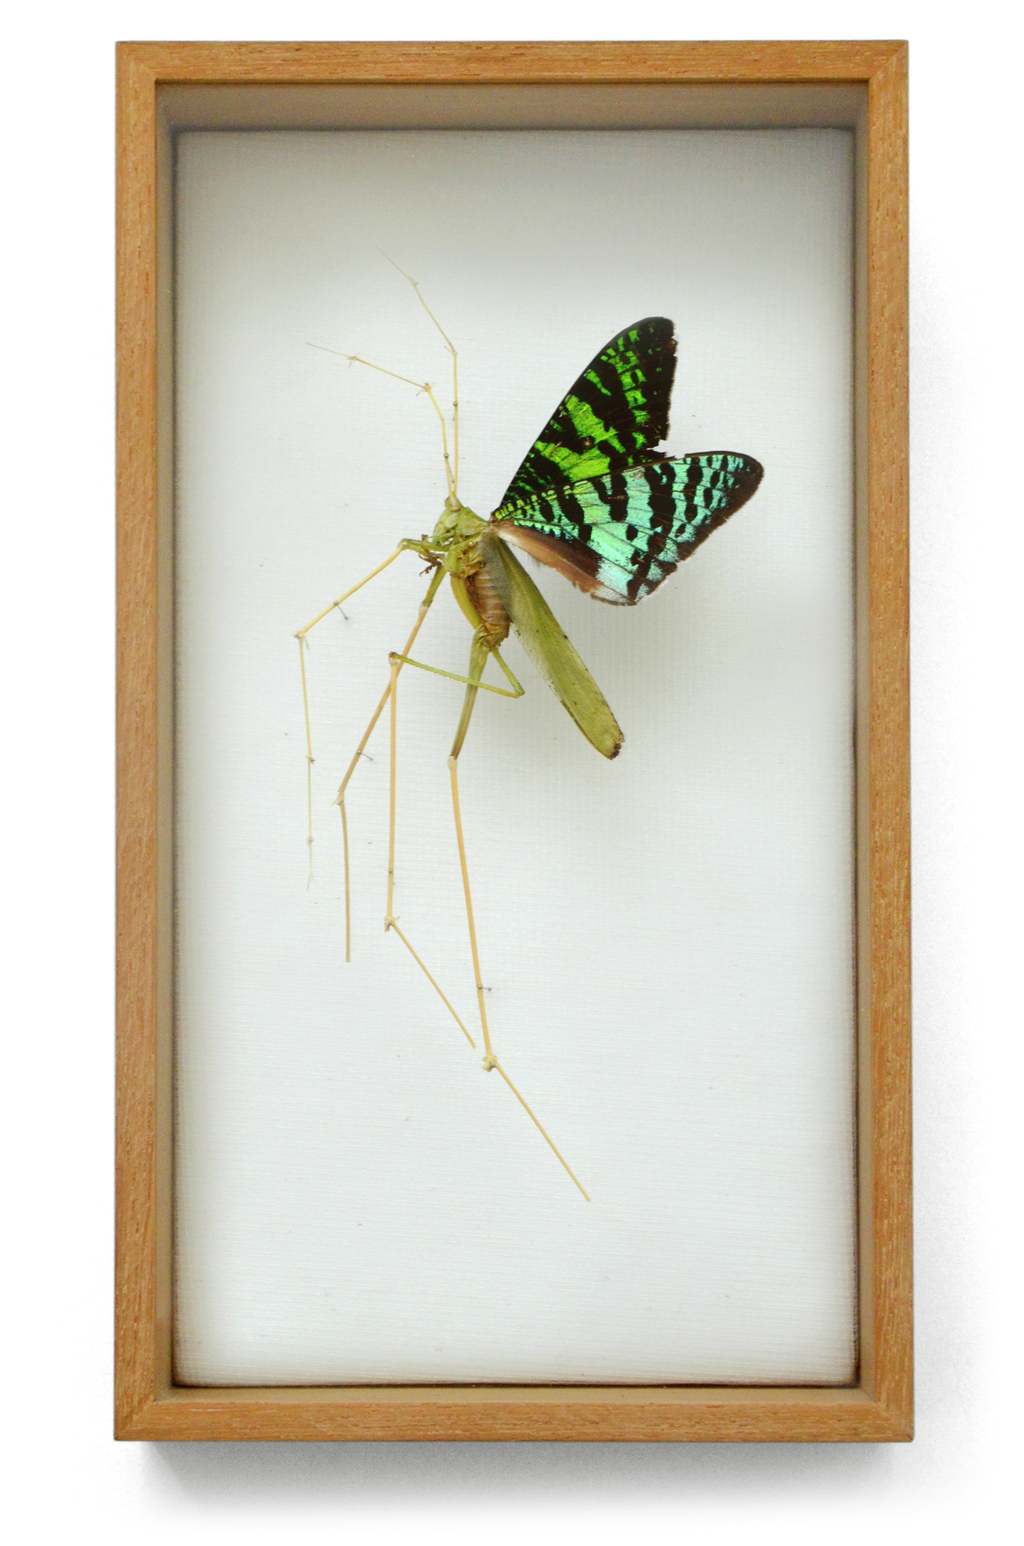 """Carnival"" is a grashopper that dressed up like a butterfly. He got a pair of wings and high heels made from flower twigs. (w:14 h:25 d:5.5 cm)"